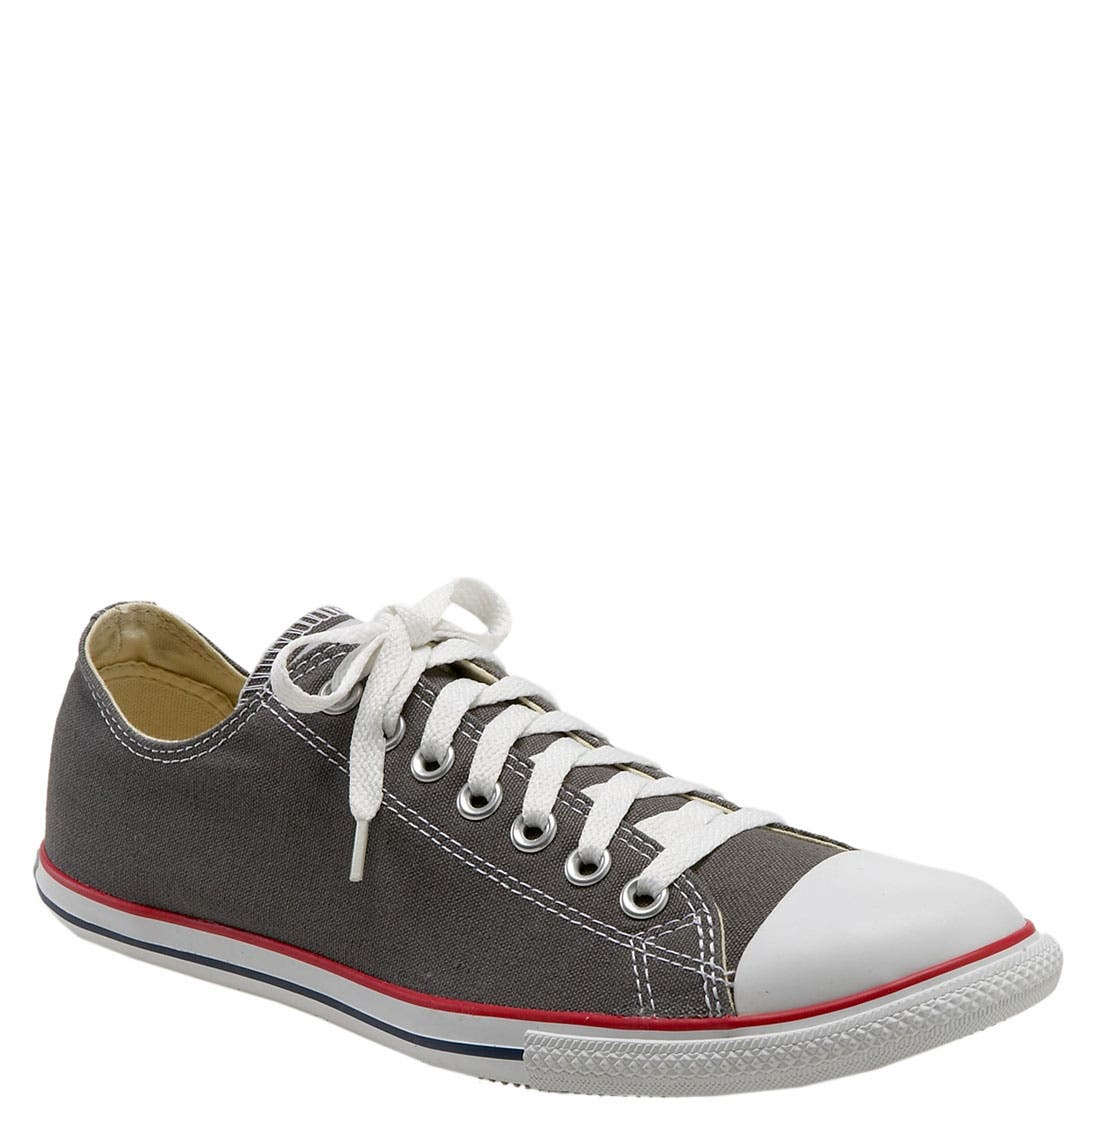 Main Image - Converse Chuck Taylor® 'Slim' Low Top Leather Sneaker (Men)